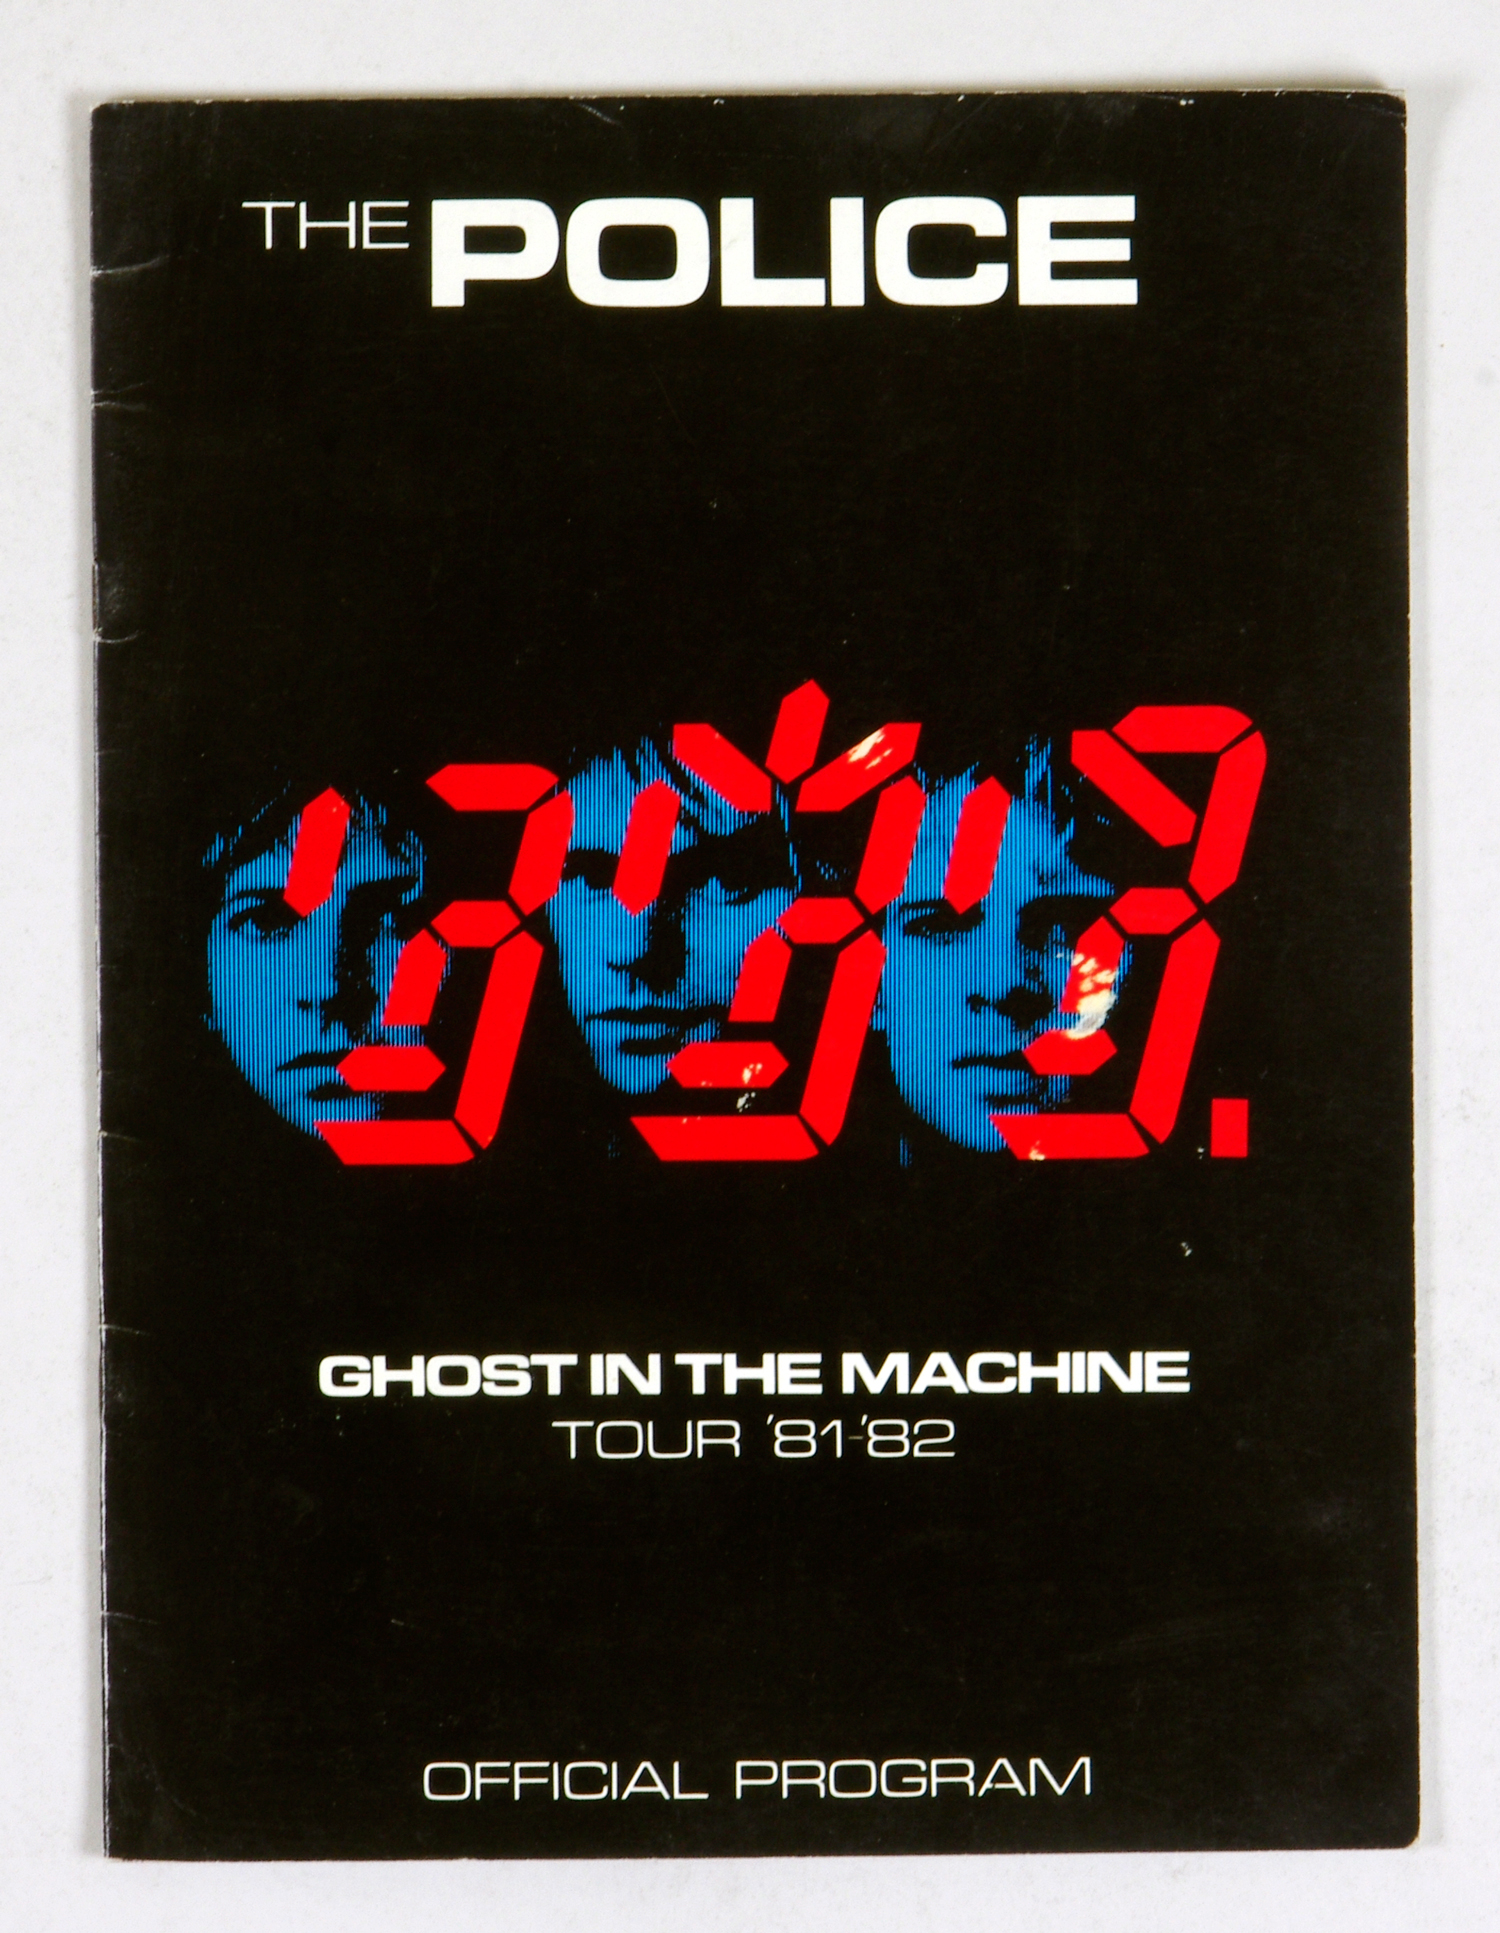 The Police 1981 Ghost In The Machine Tour Program Book